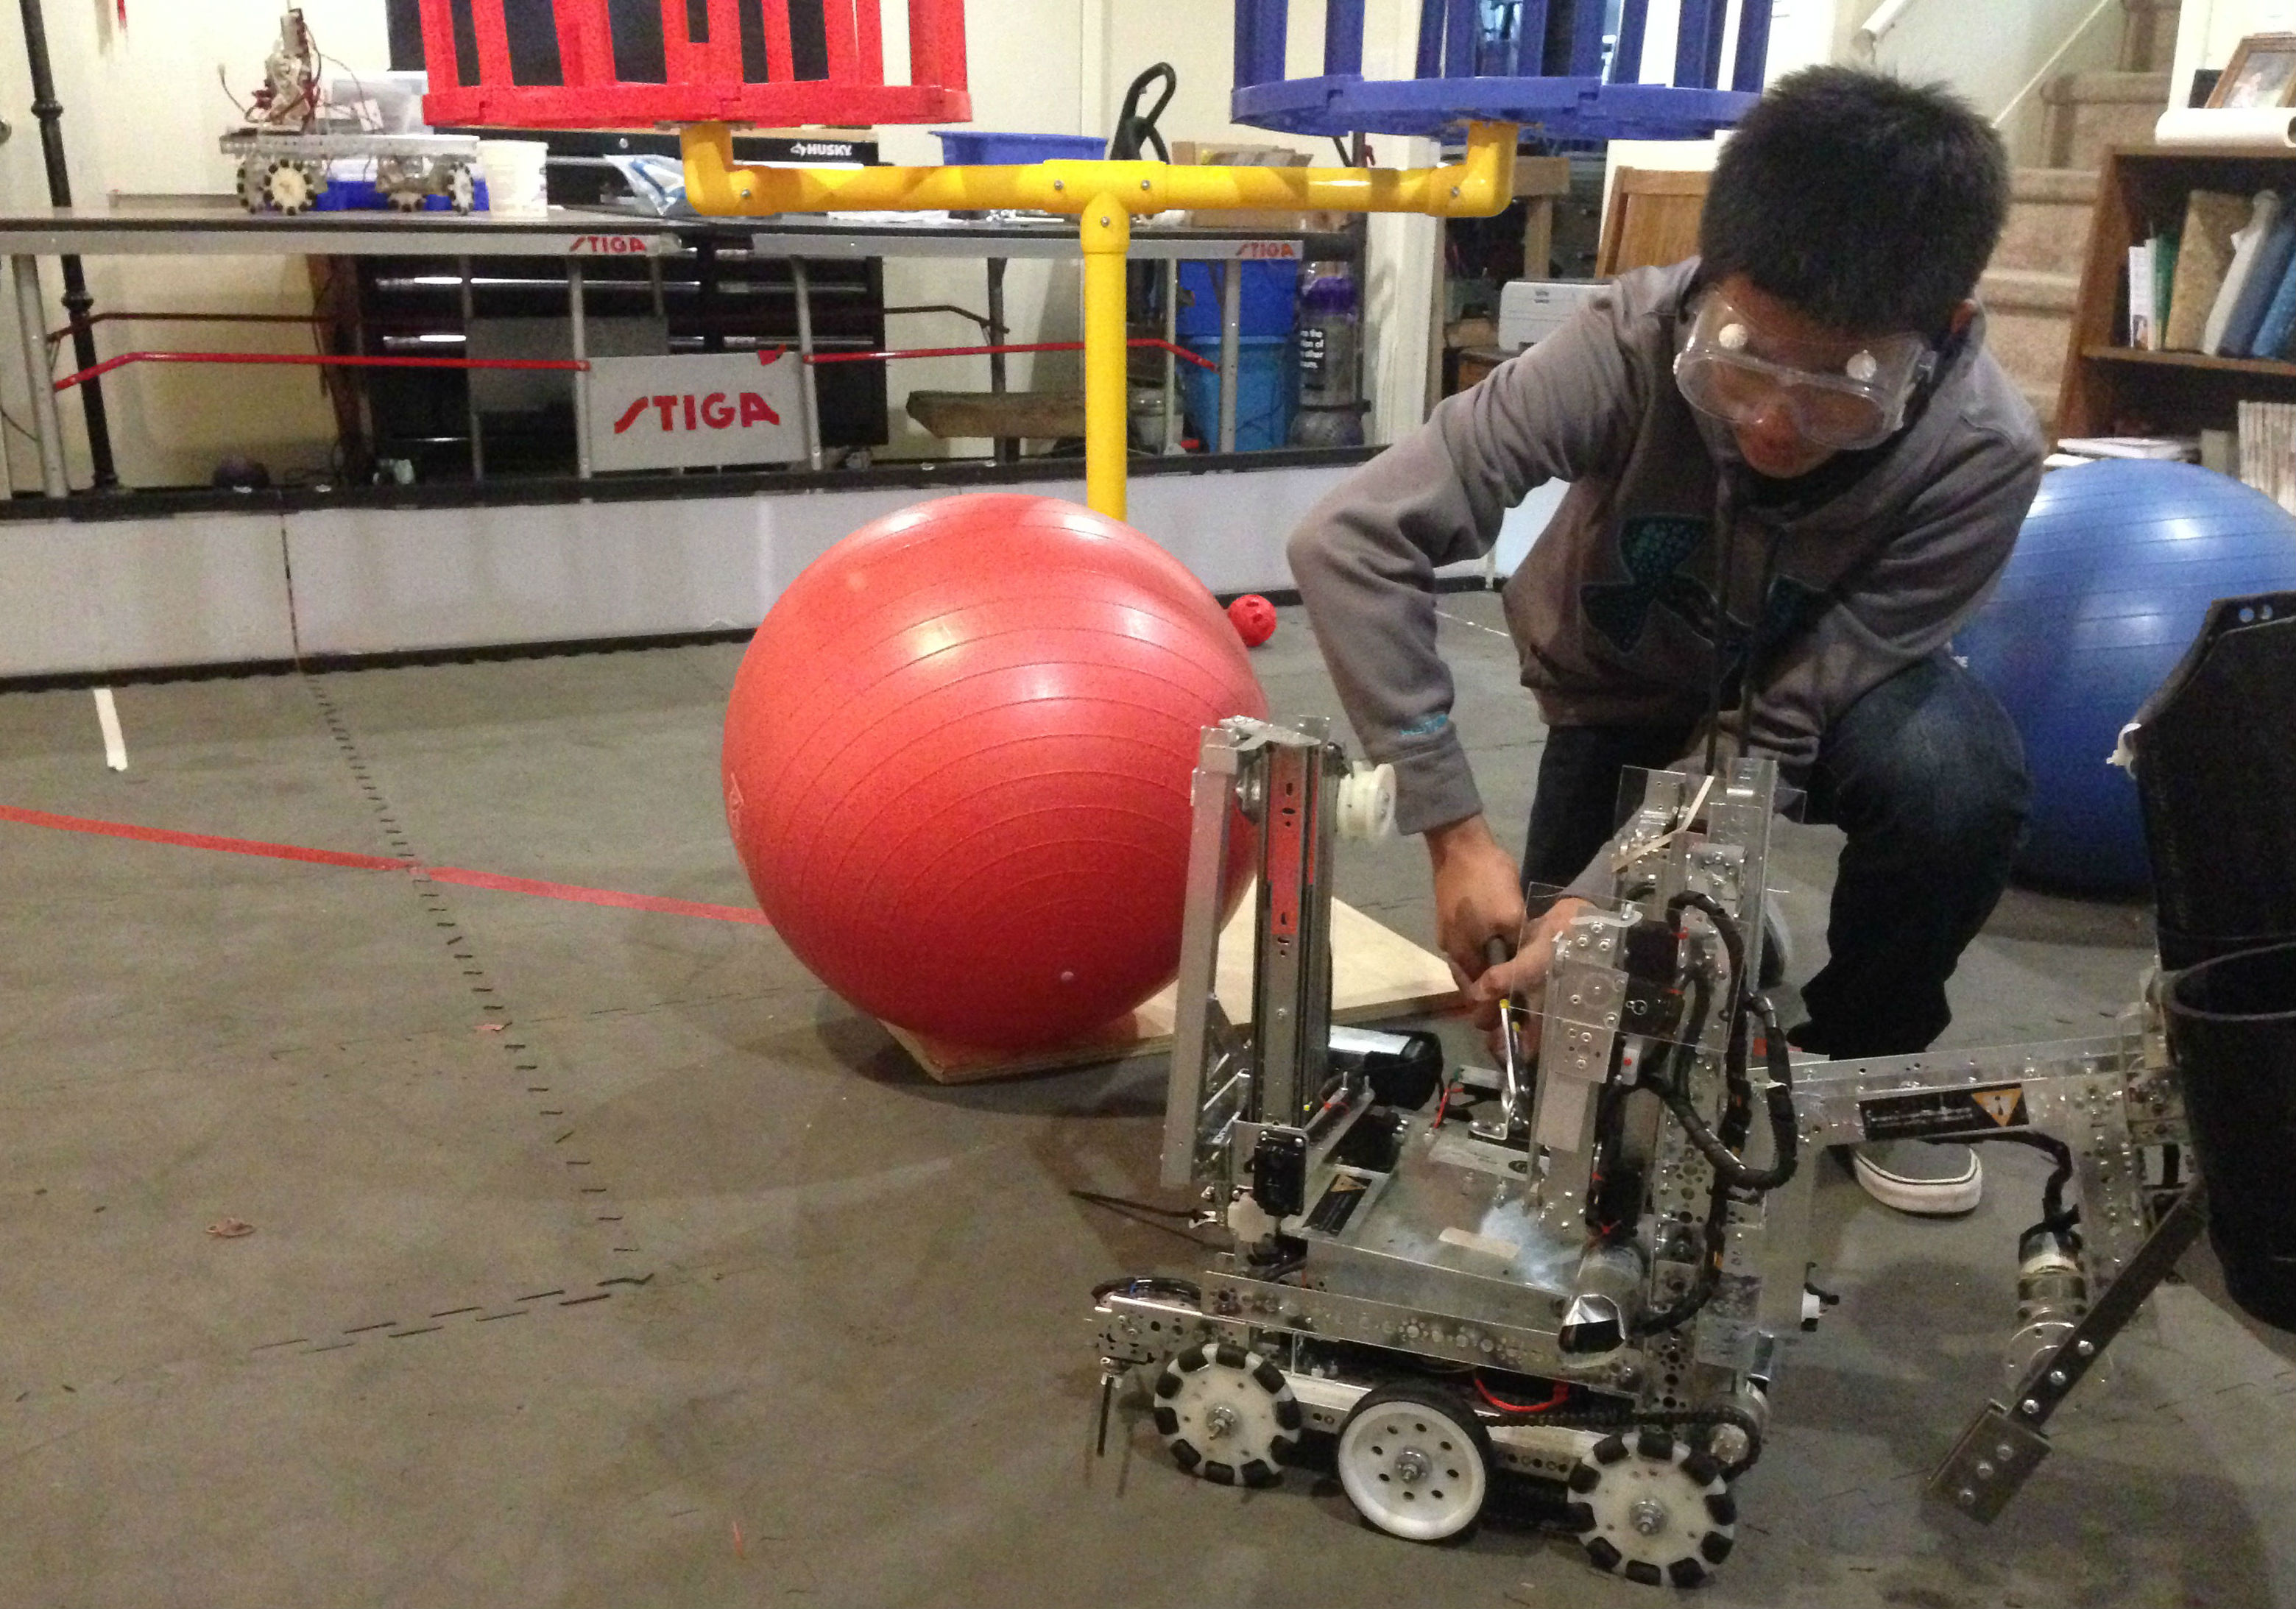 Fu has pushed the boundaries of his comfort zone by trying new activities like robotics.